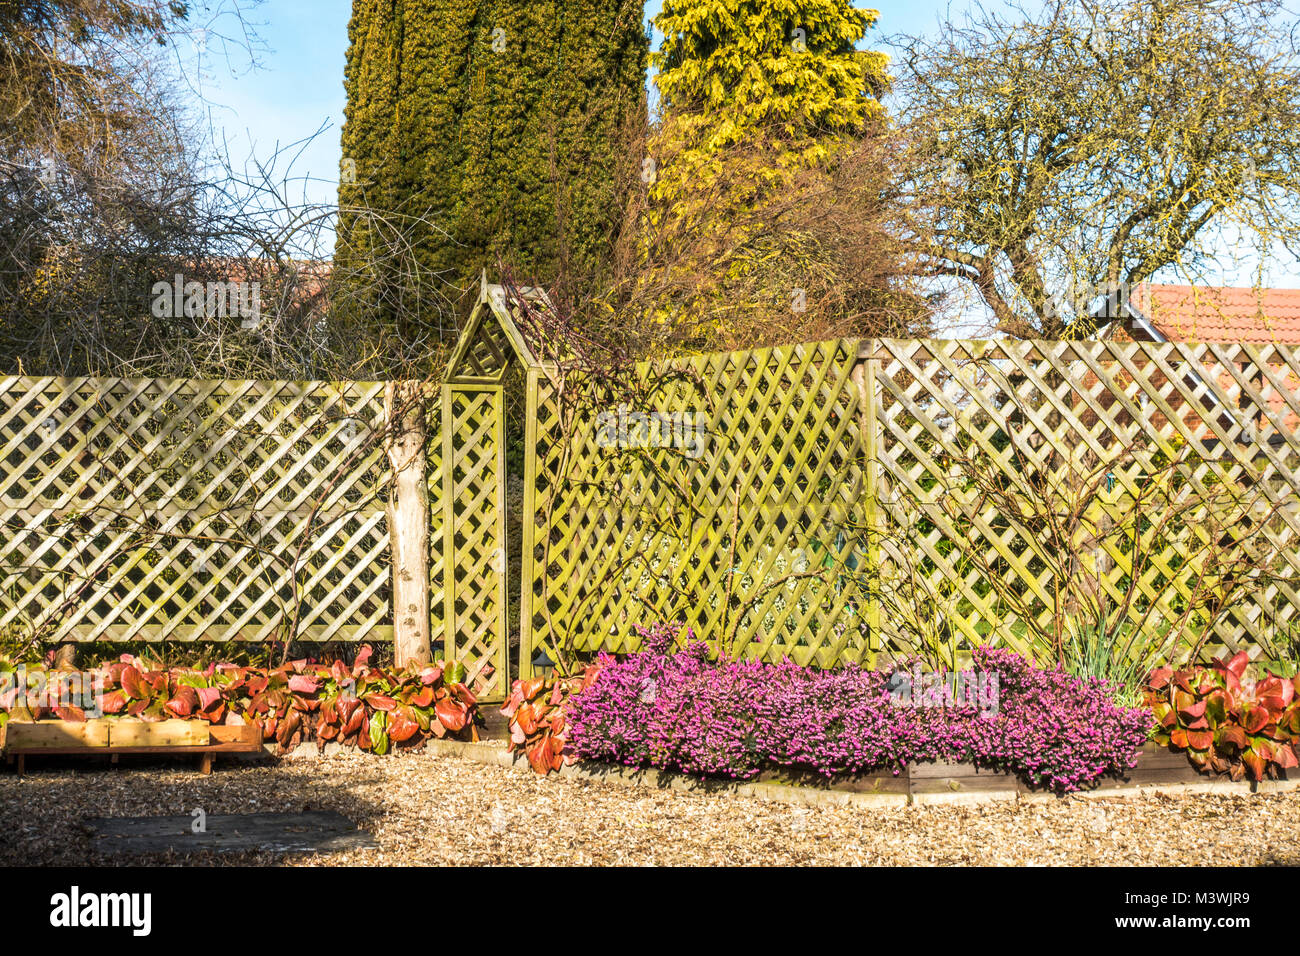 trellis fencing stock photos trellis fencing stock images alamy